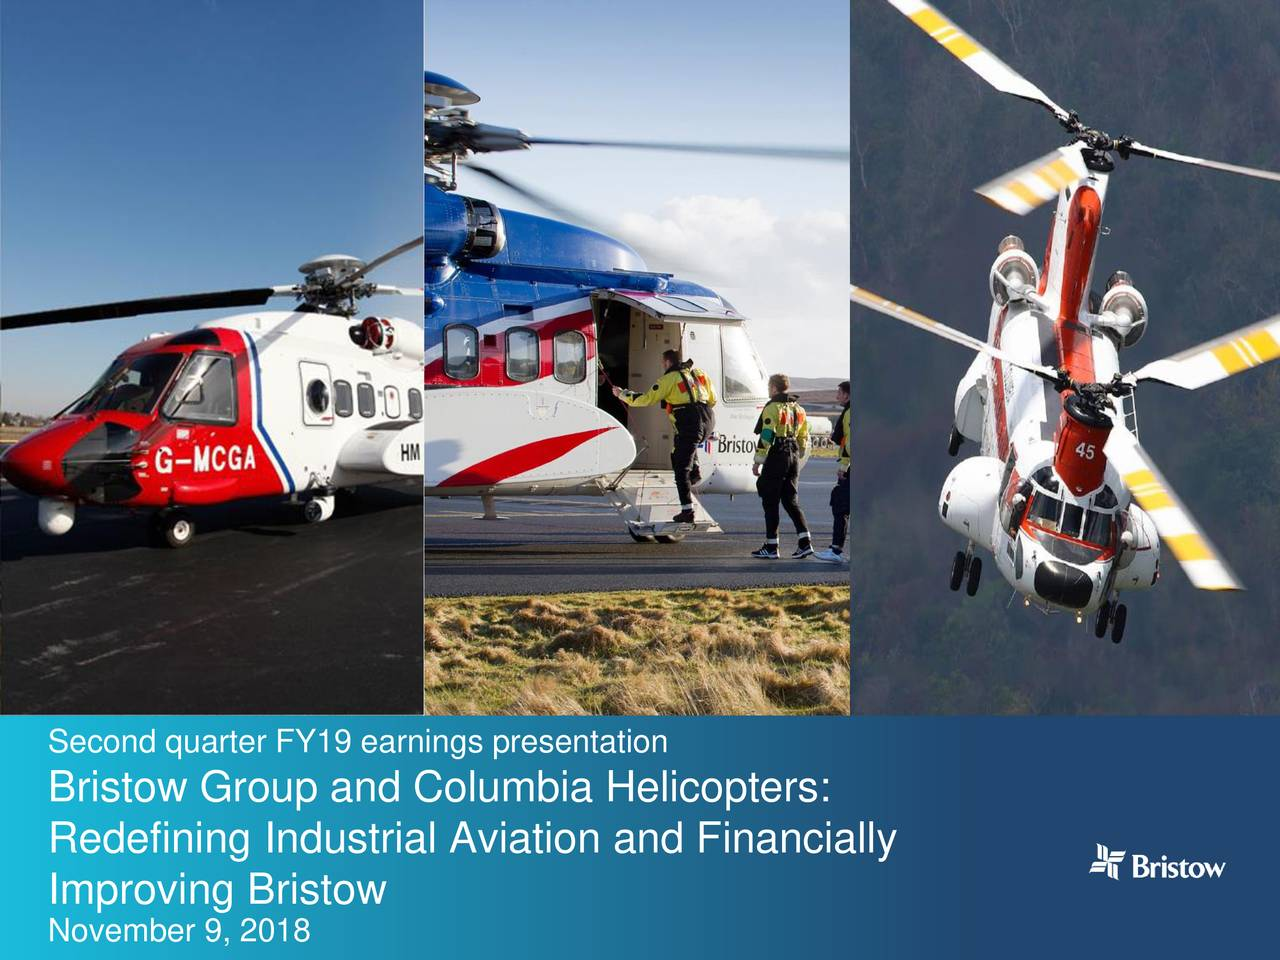 90 160 Fill 212 0 0 Fill 152 150 151 Fill 26 187 219 Fill 255 91 91 Second quarter FY19 earnings presentation Fill Bristow Group and Columbia Helicopters: 189 Redefining Industrial Aviation and Financially 187 188 Improving Bristow Fill November 9, 2018